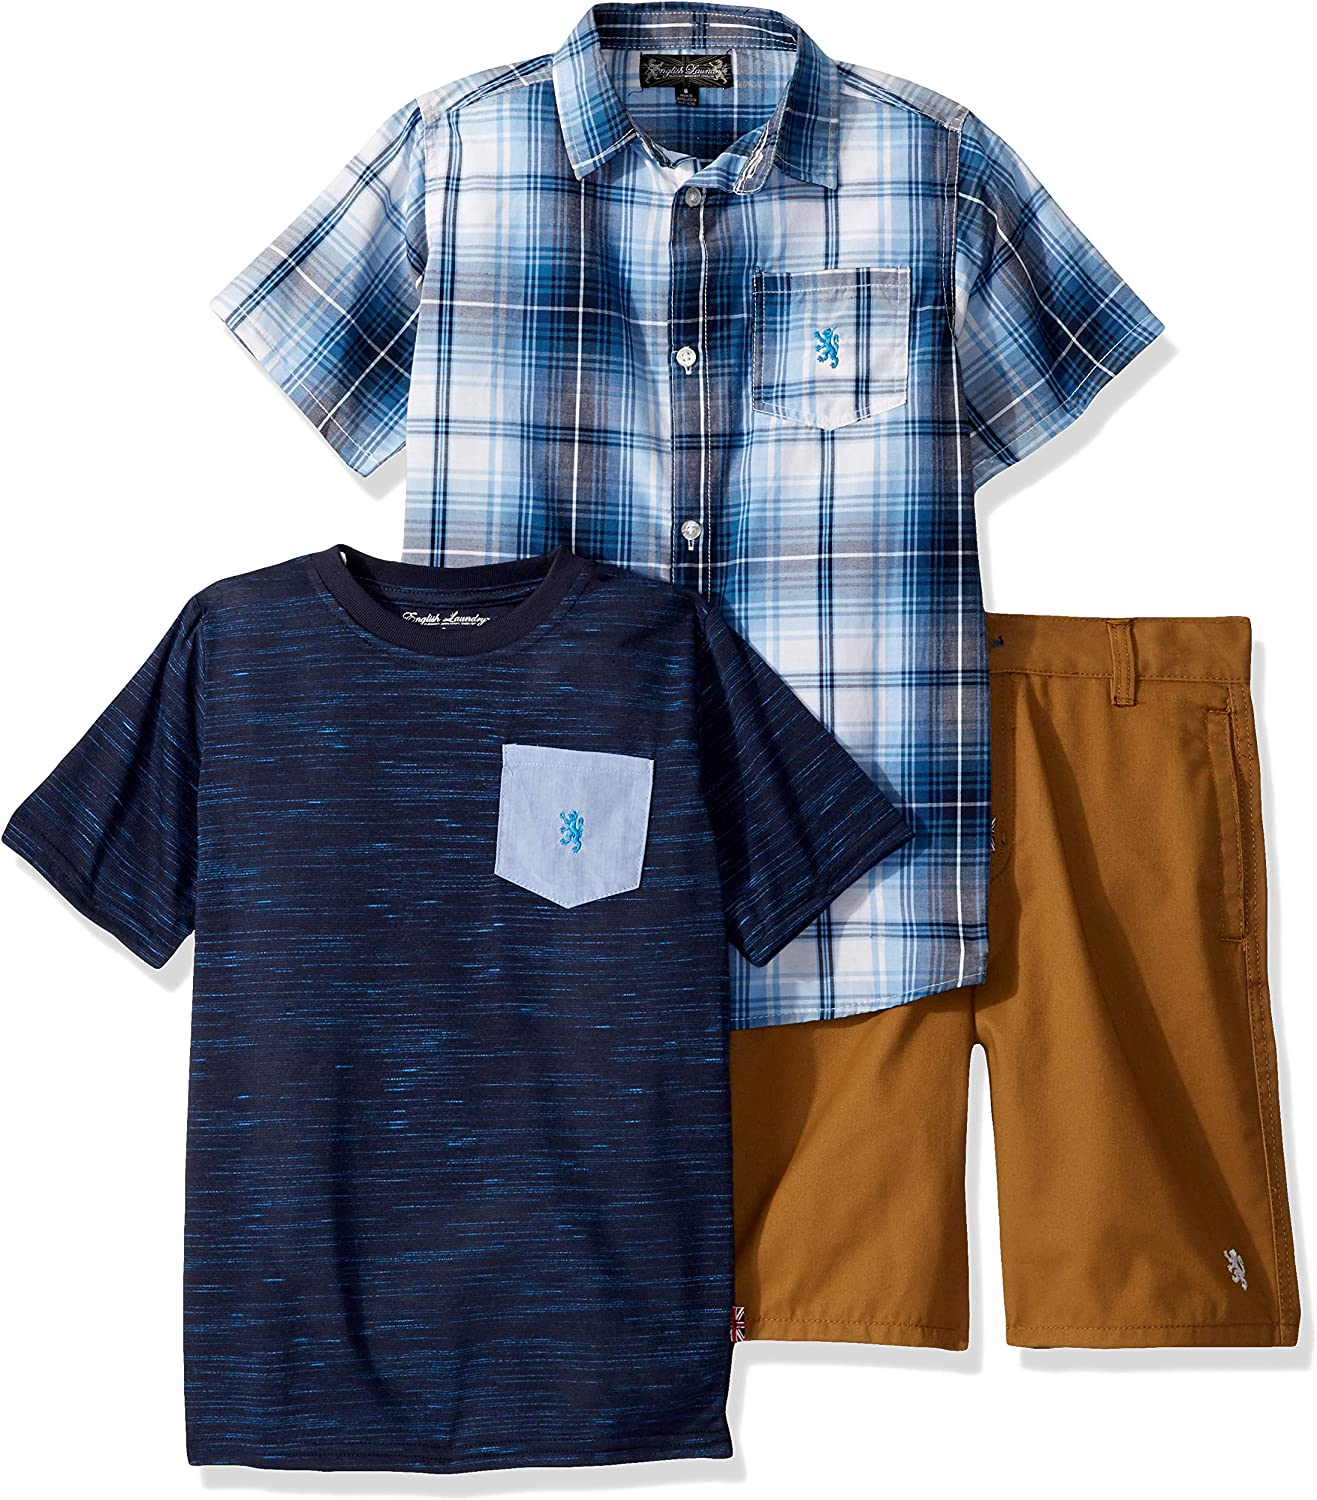 English Laundry Boys Sleeve Plaid Woven, T-Shirt, and Short Set